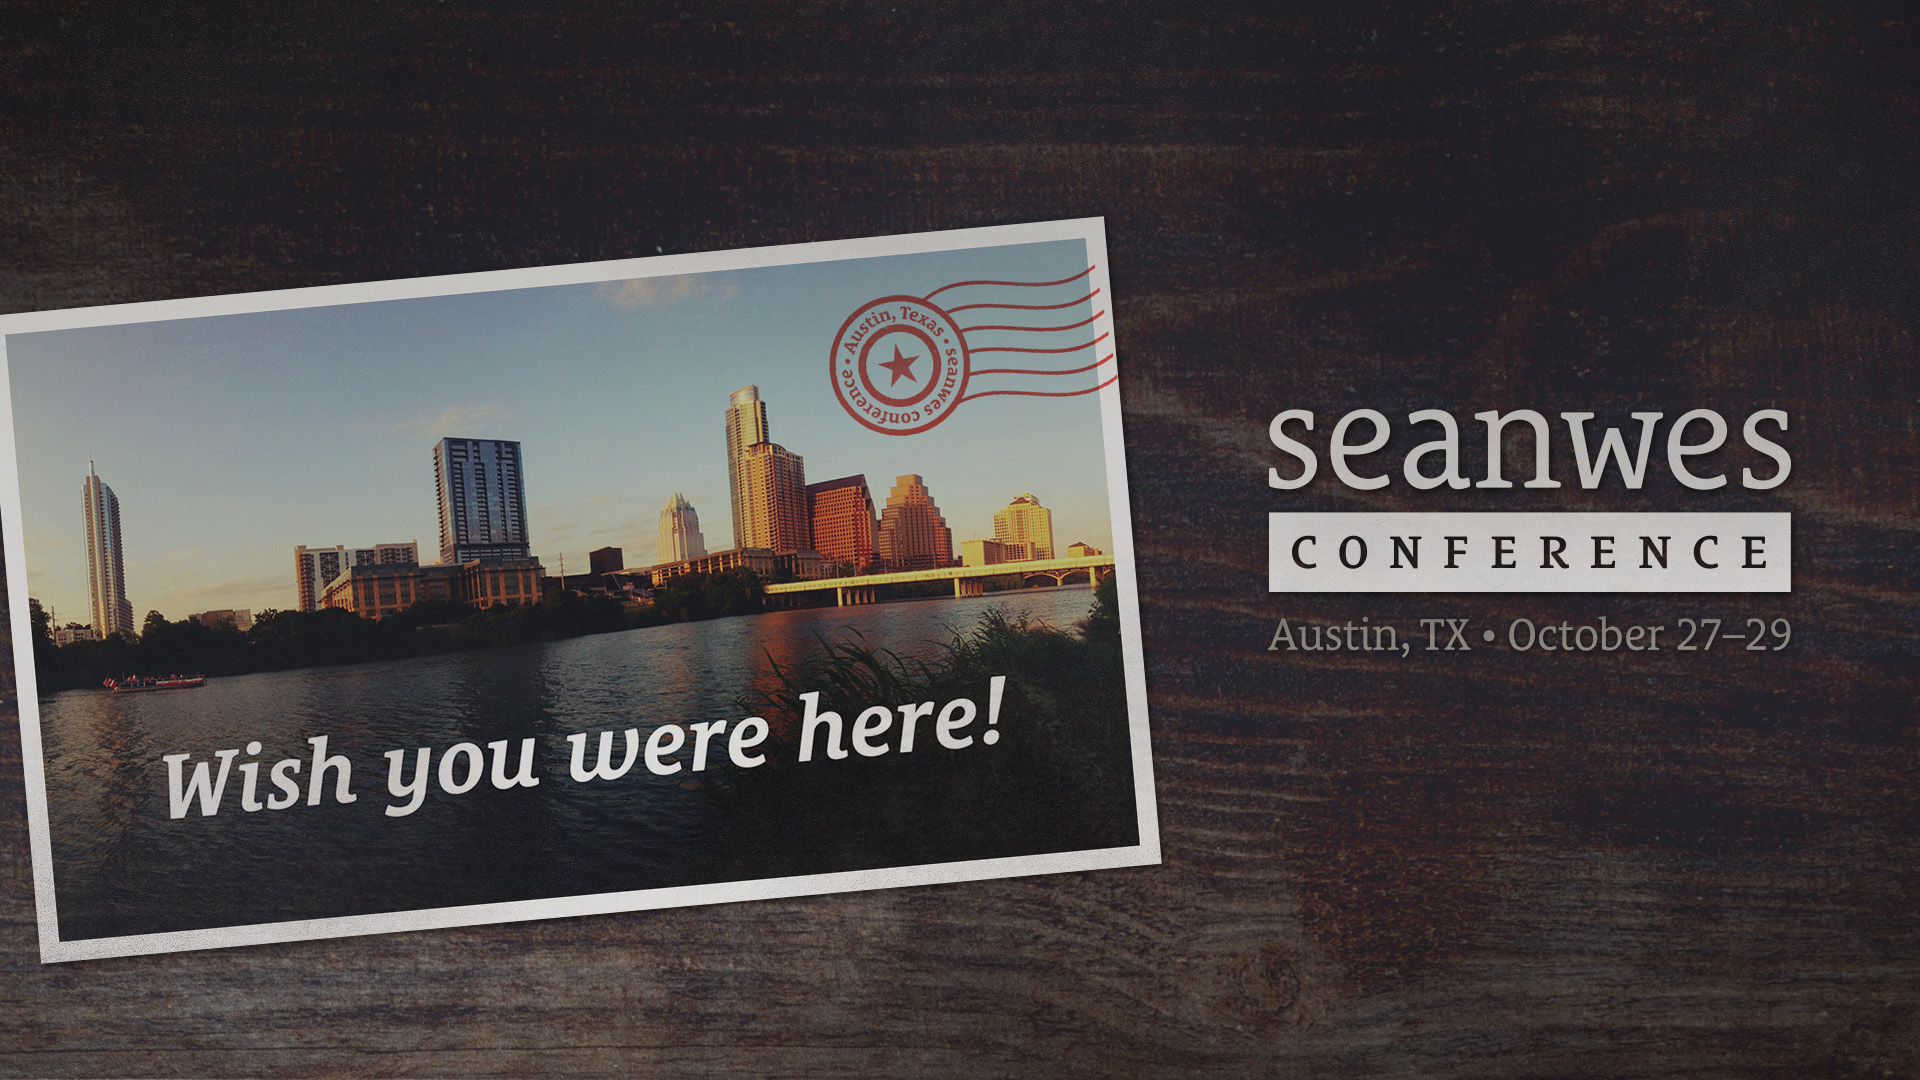 seanwes conference - Wish You Were Here